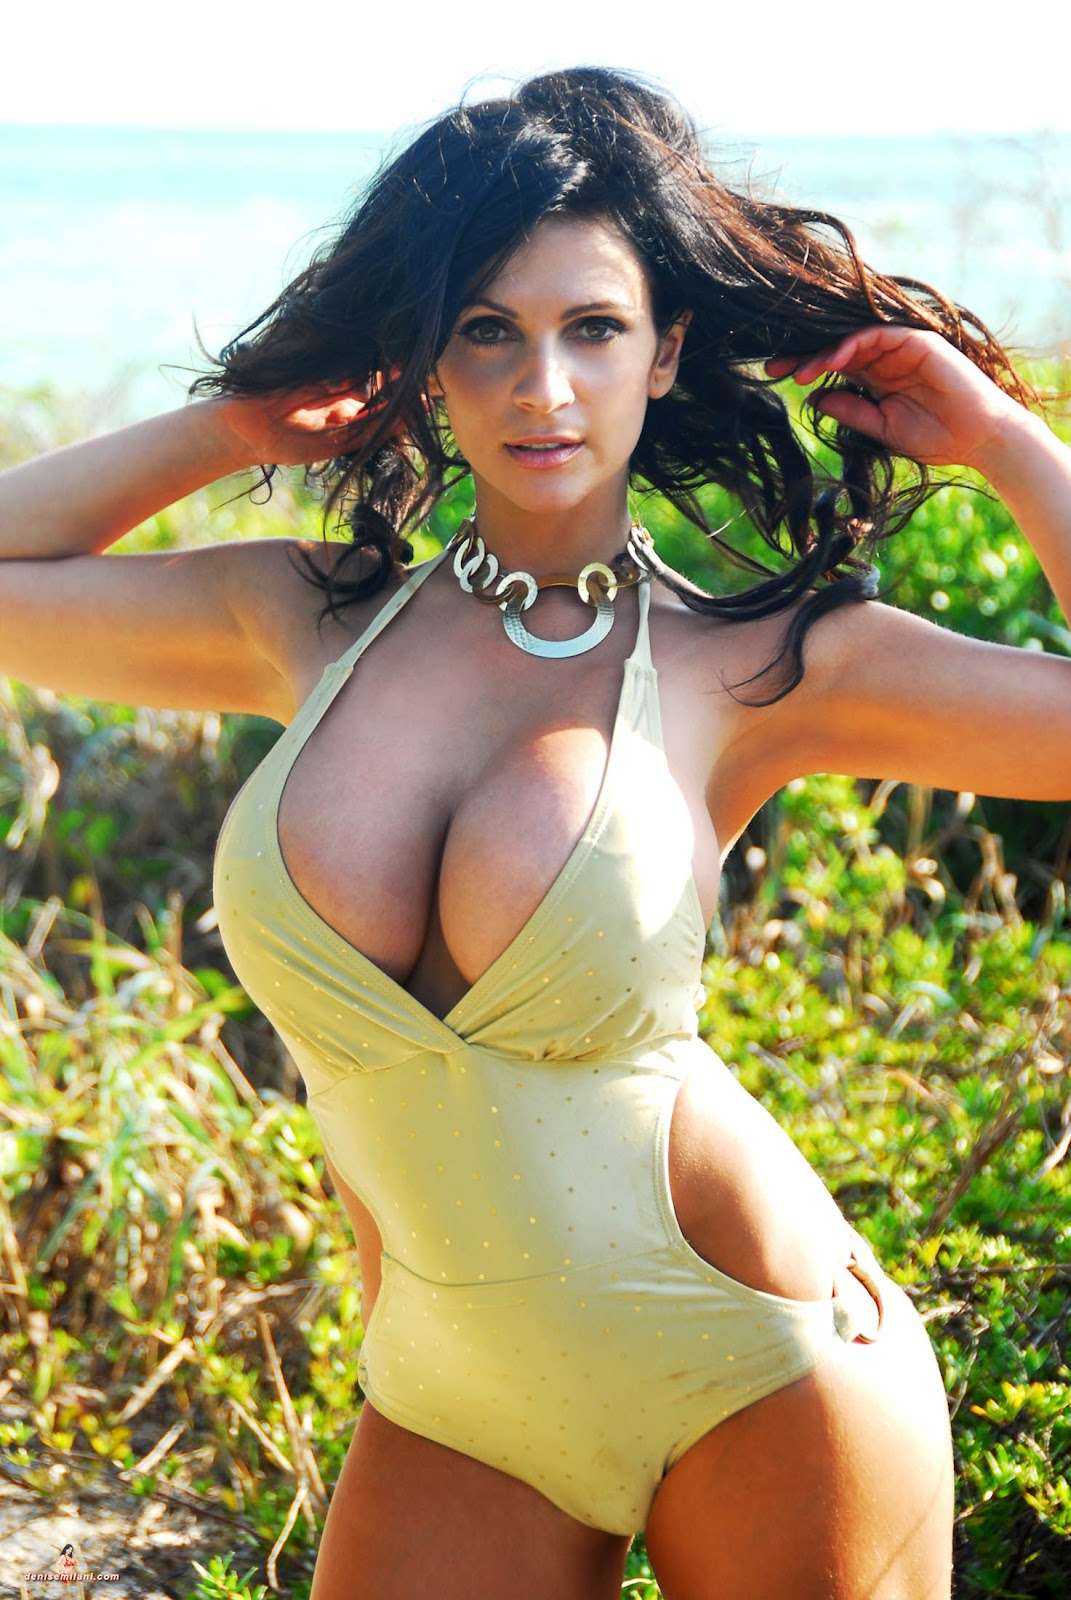 http://2.bp.blogspot.com/--1cMdRHh5fk/T98izAGdSmI/AAAAAAAAAbs/J2wDC34XaRU/s1600/Denise-Milani-Hot-Photo-19.jpg